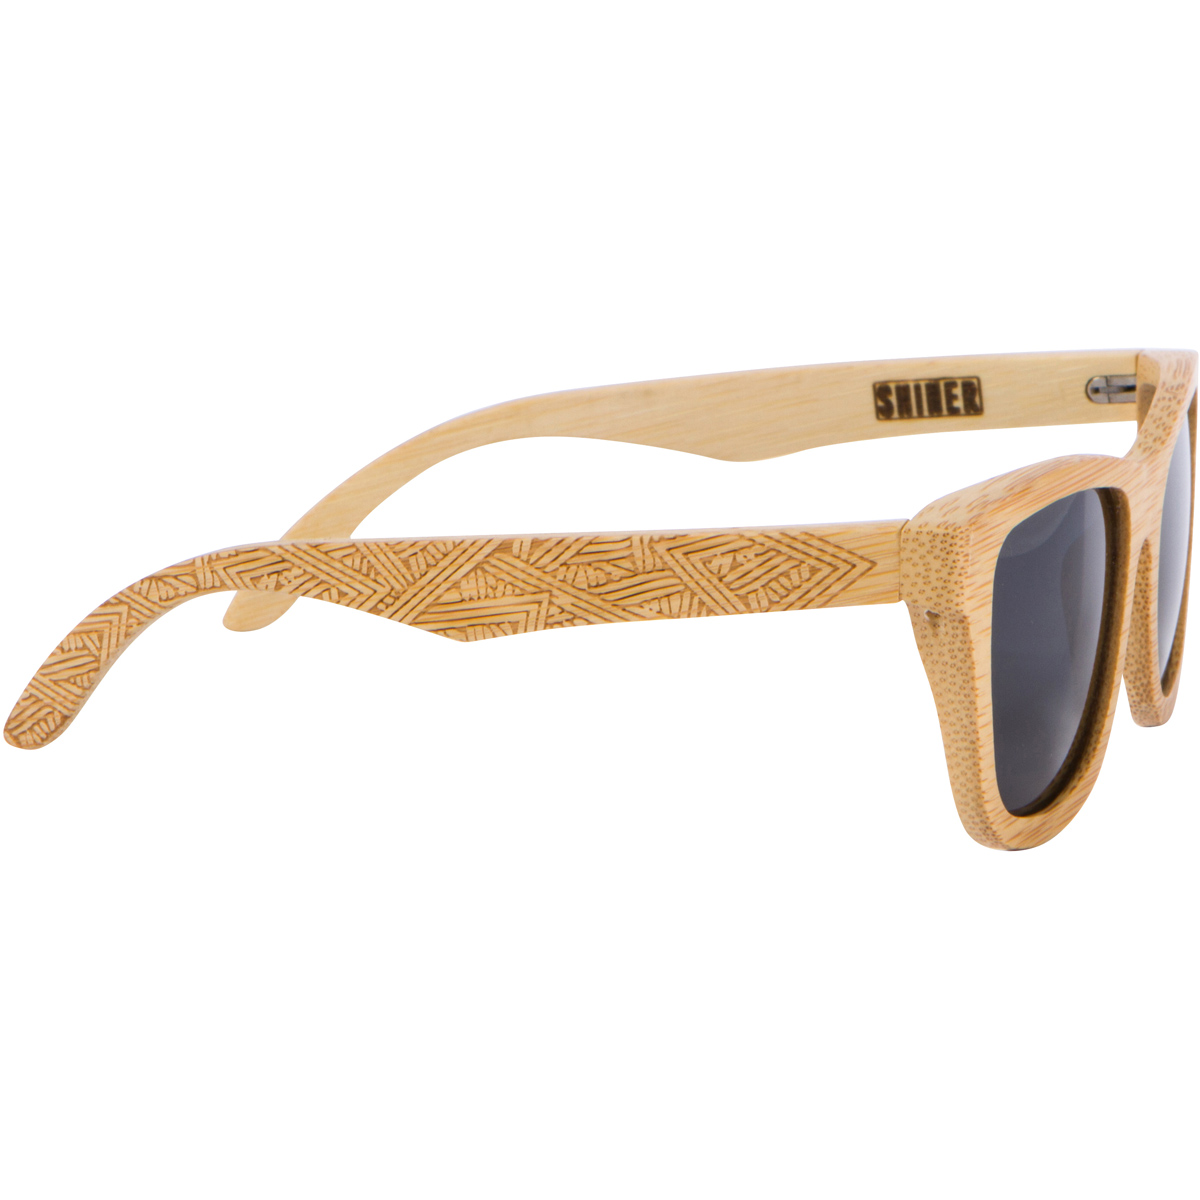 Voyager - Bamboo Frame - Shiner Sunglasses